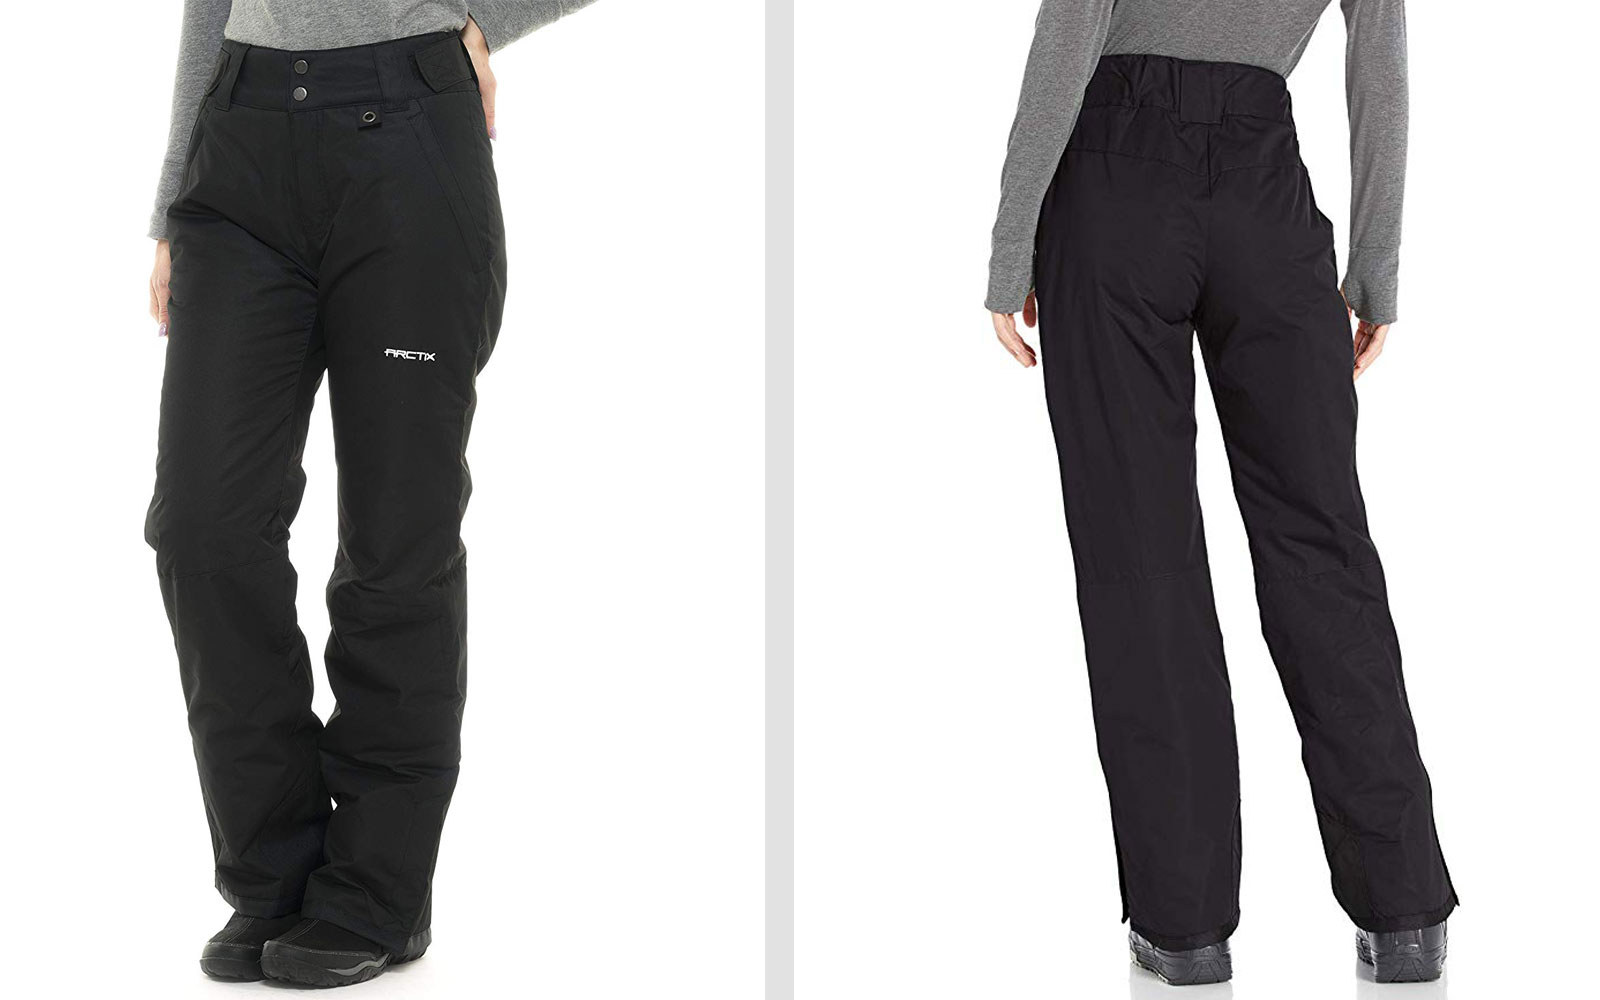 These best-selling, affordable snow pants are a must-have if you'll be hitting the slopes